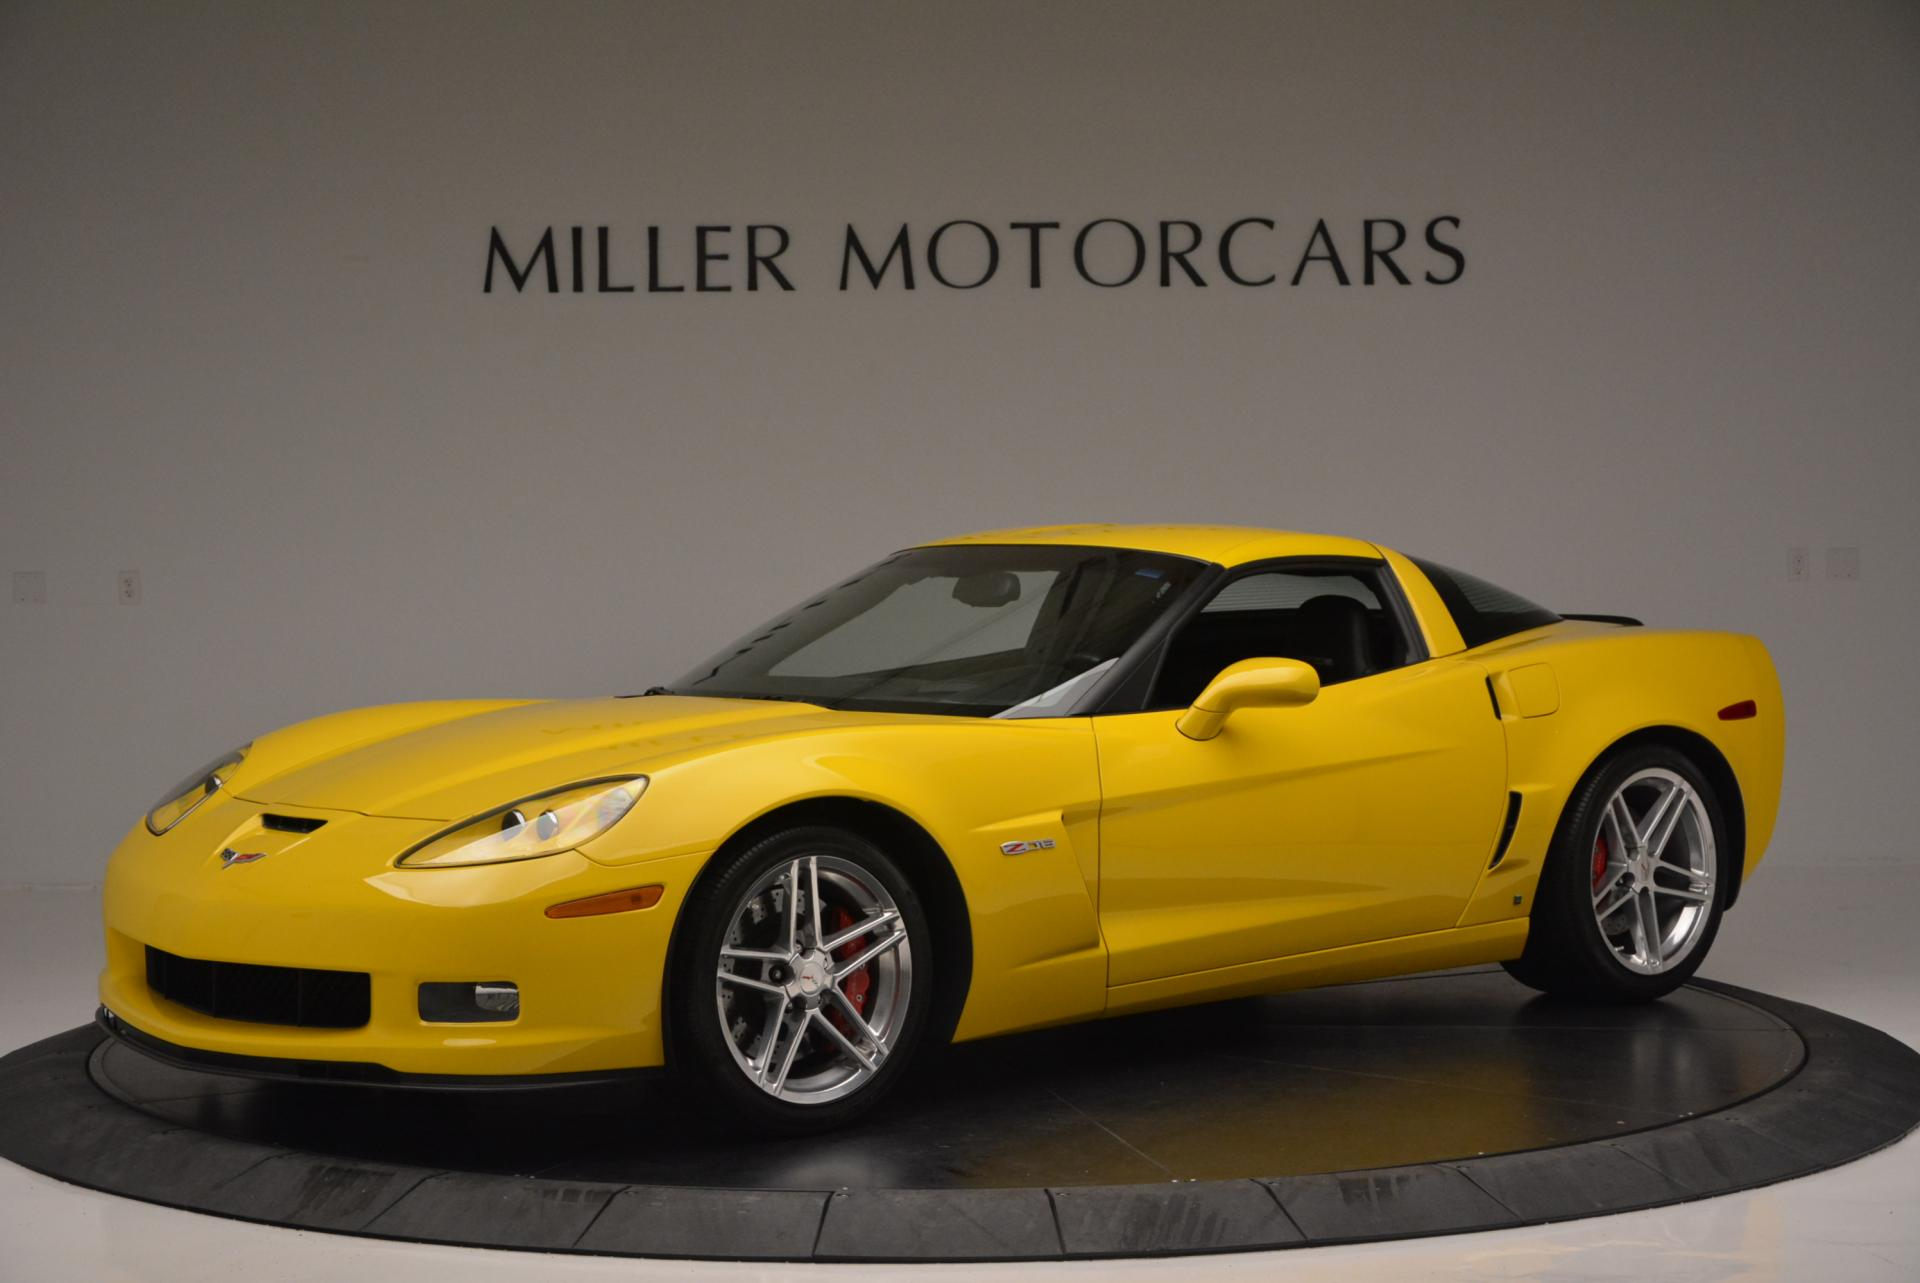 Used 2006 Chevrolet Corvette Z06 Hardtop for sale Sold at Aston Martin of Greenwich in Greenwich CT 06830 1